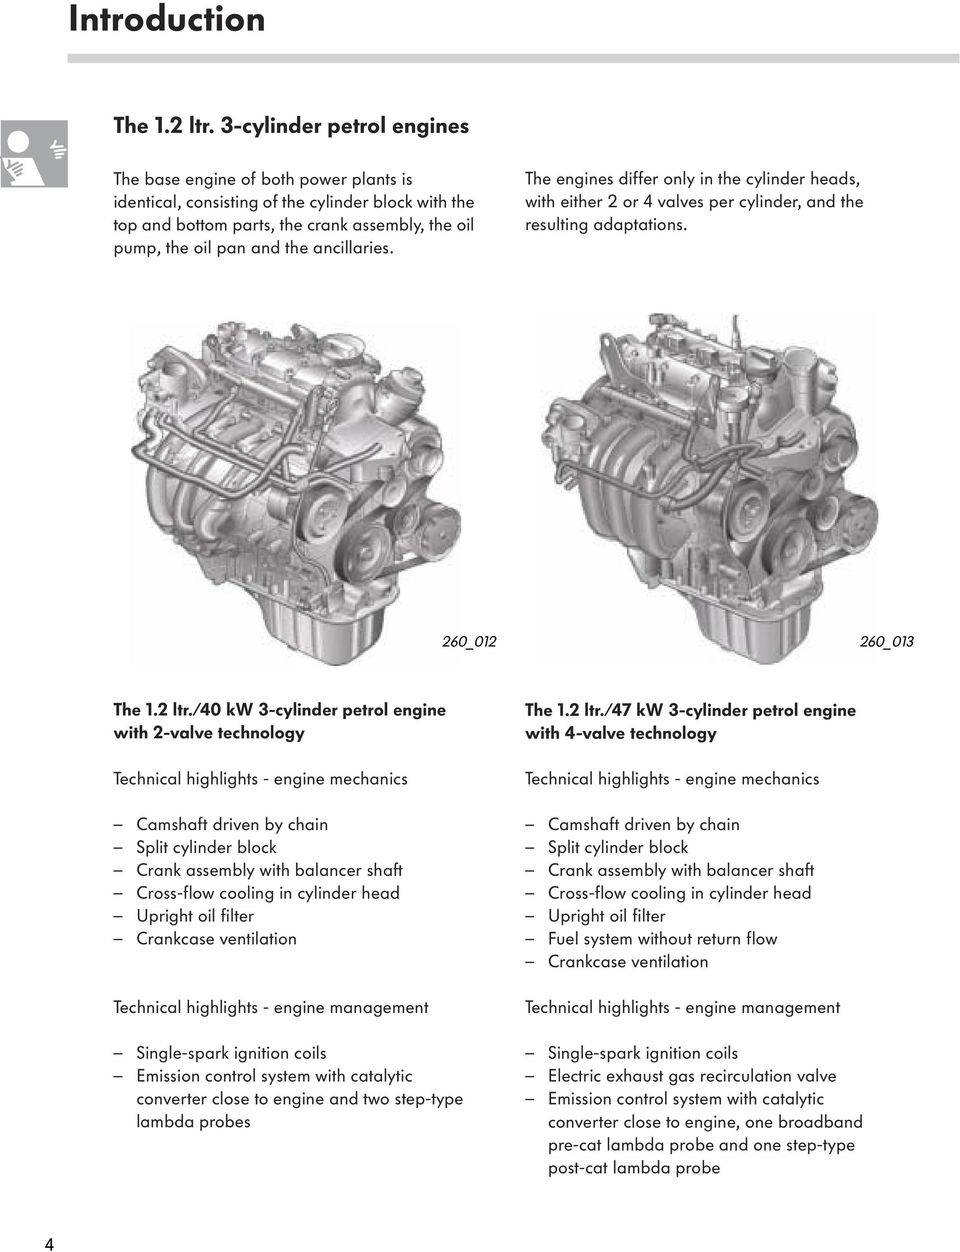 The 12 Ltr 3 Cylinder Petrol Engines Pdf Cat 3600 Gas Engine Diagram Differ Only In Heads With Either 2 Or 4